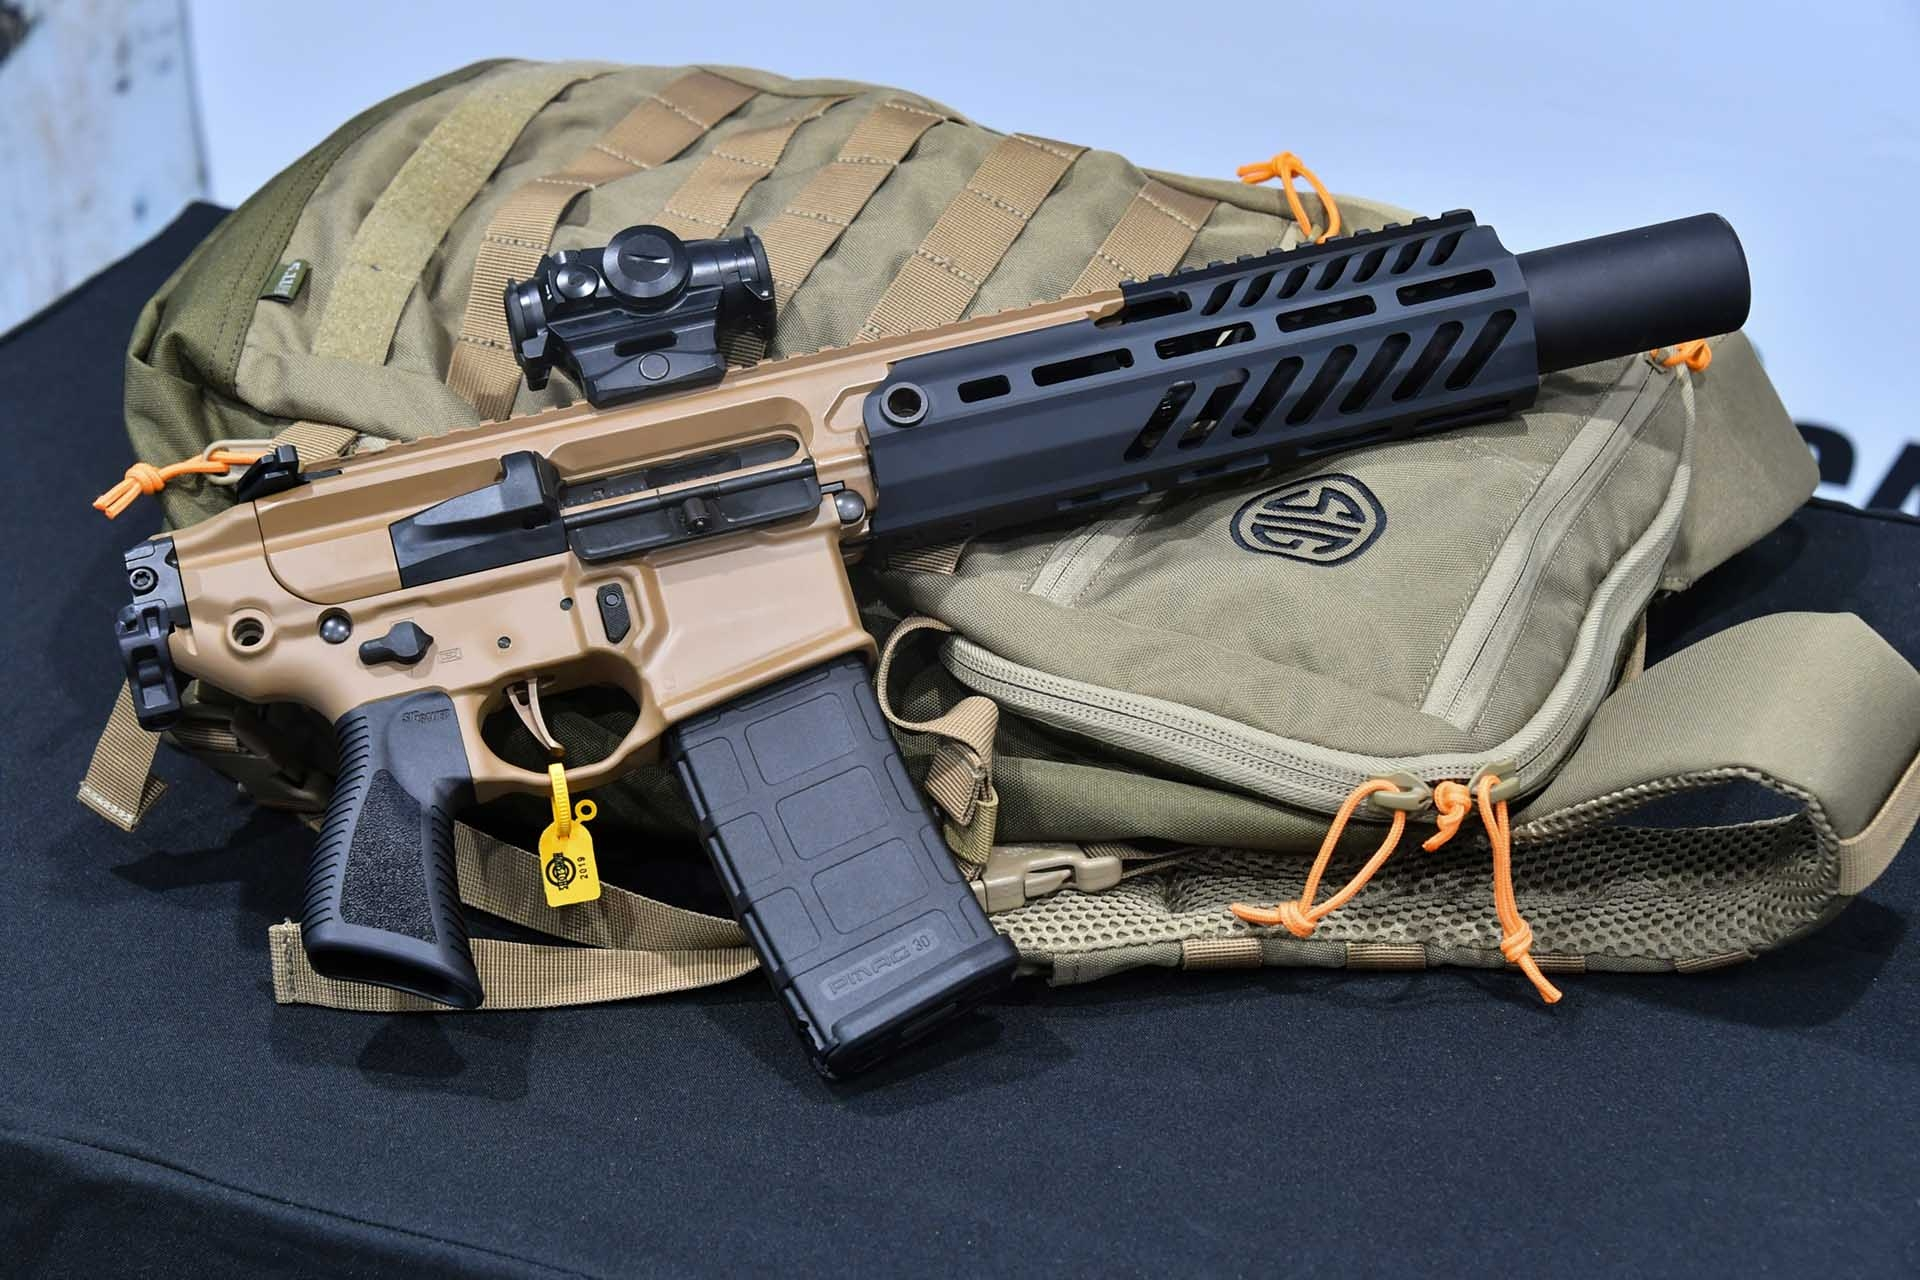 SIG Sauer MCX Canebrake in .300BK with the SIGSRD762 suppressor mounted at the SIG Premier Media Day event.